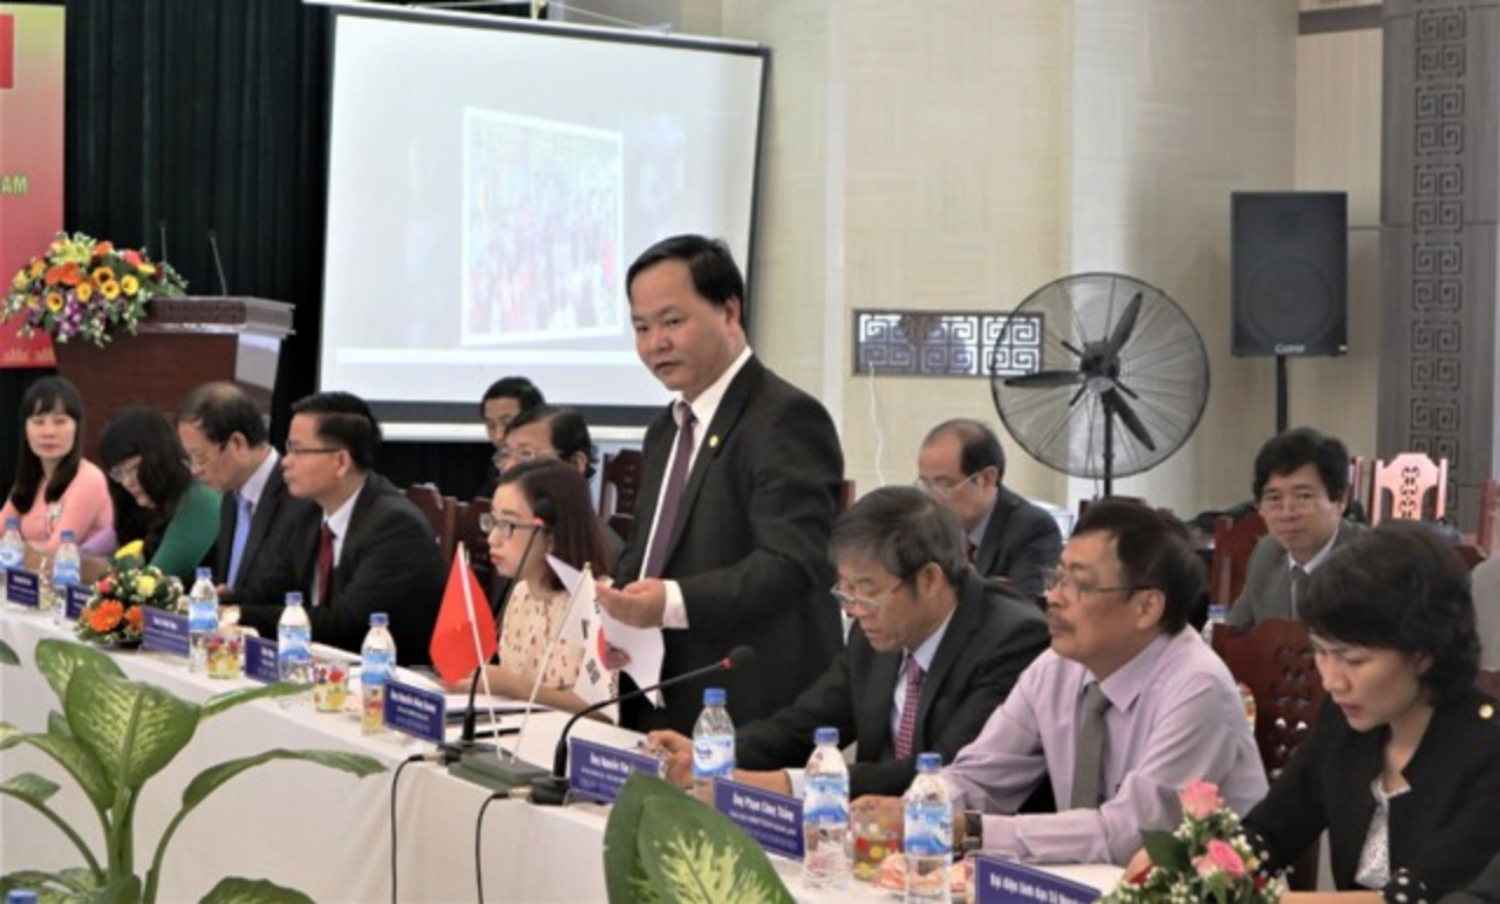 Chaiman of the Tam Ky city's People Committee Nguyen Hong Quang gives a speech at the meeting.